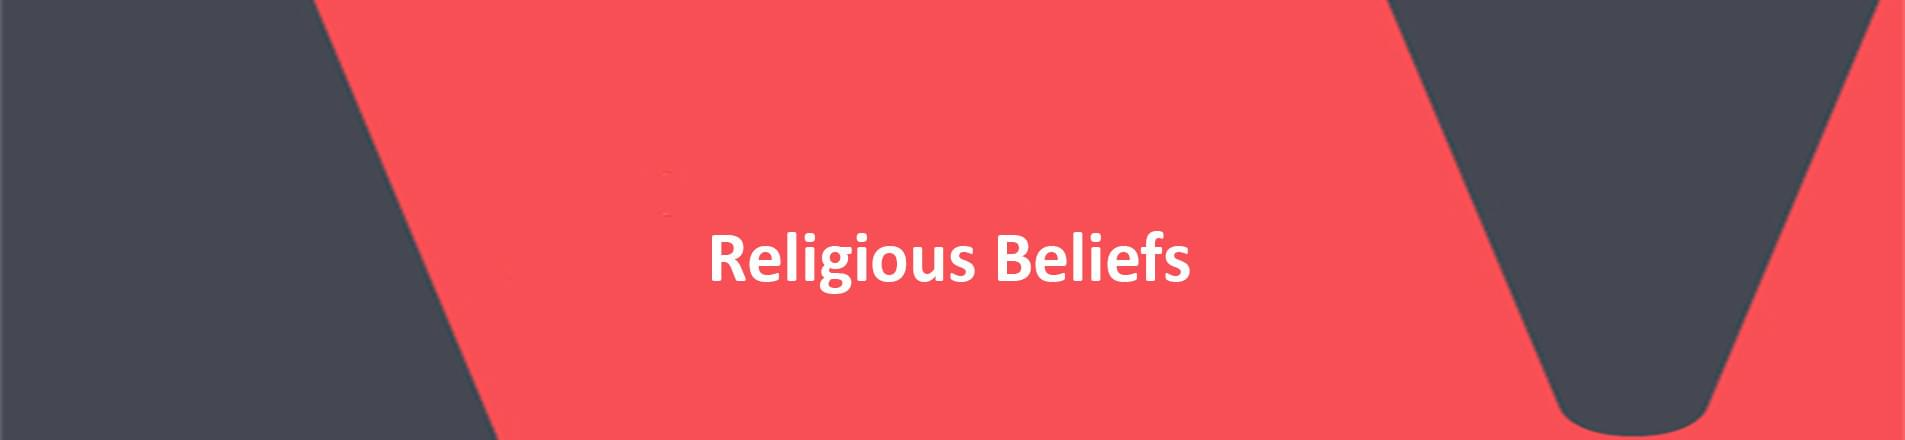 red banner with white text reading religious beliefs